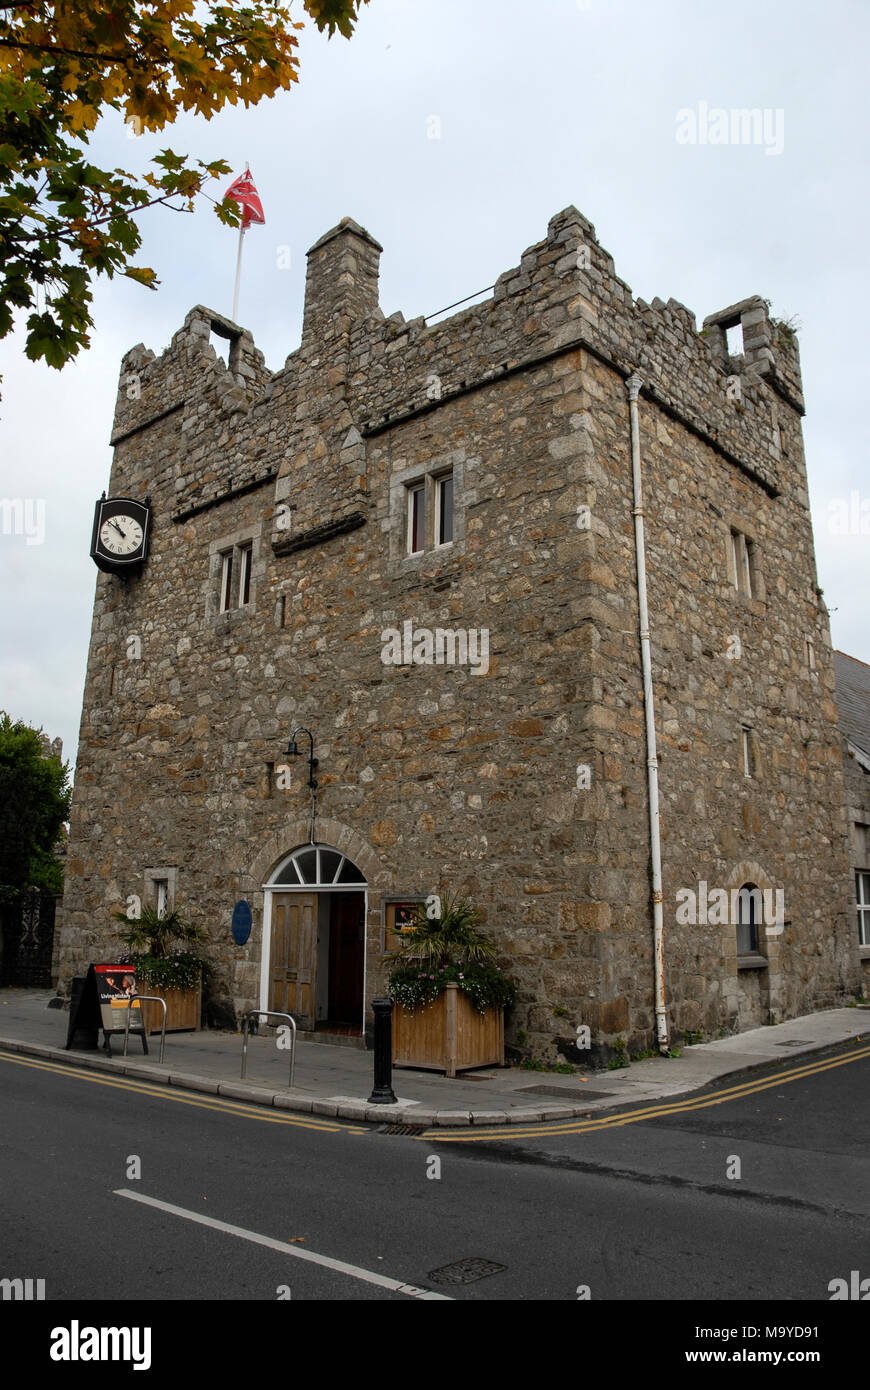 the village of dalkey a residential suburb south of dublin city